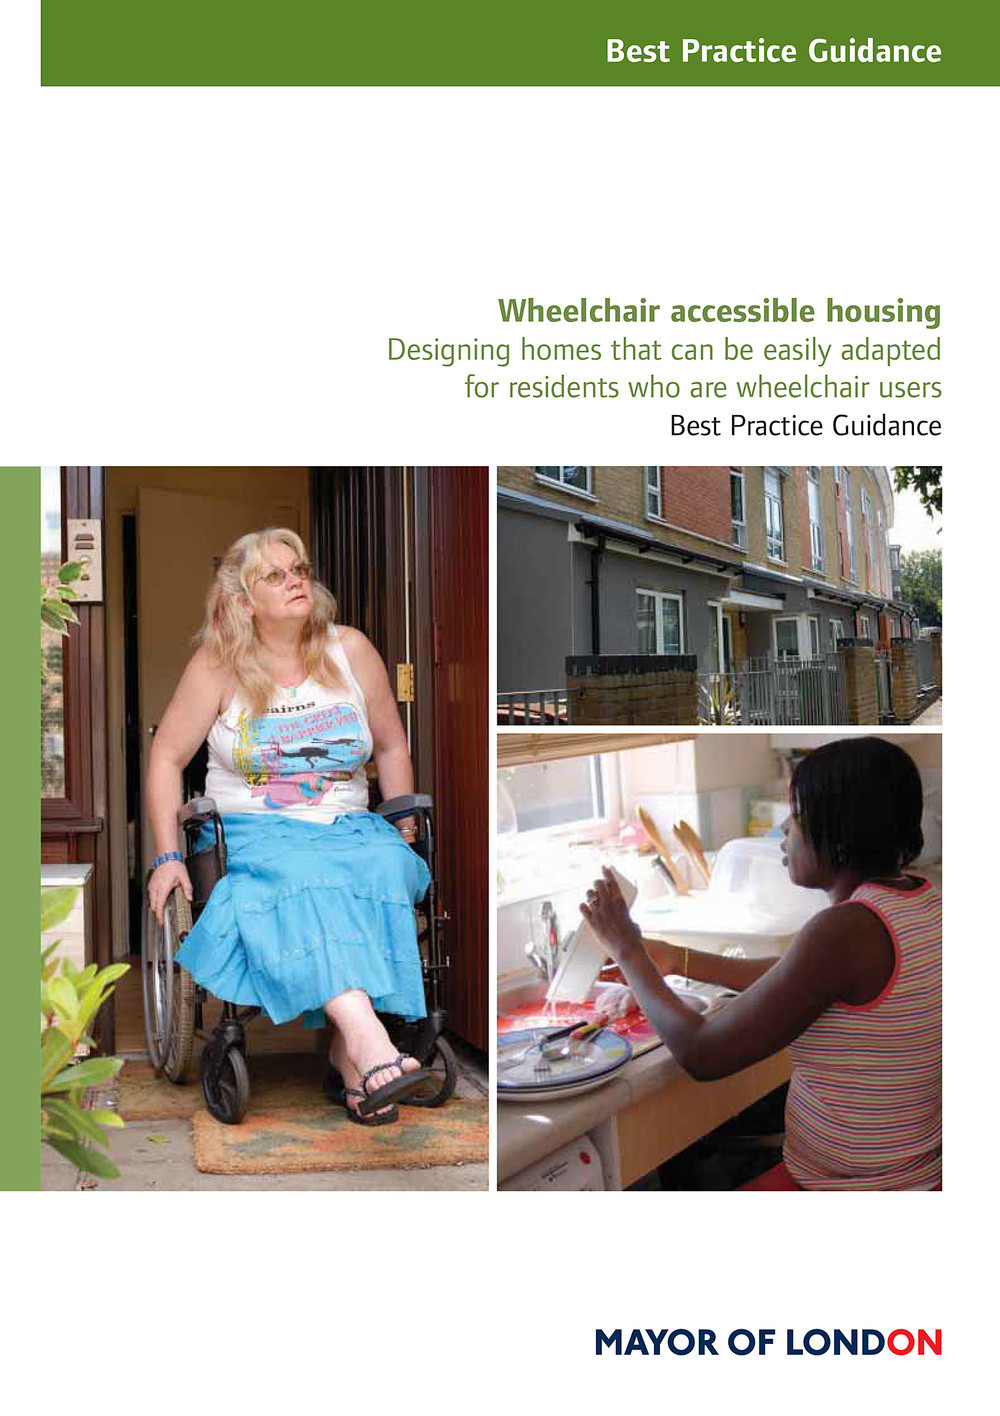 Cover of the Mayor of London's Best Practice Guidance on Wheelchair Accessible Housing.